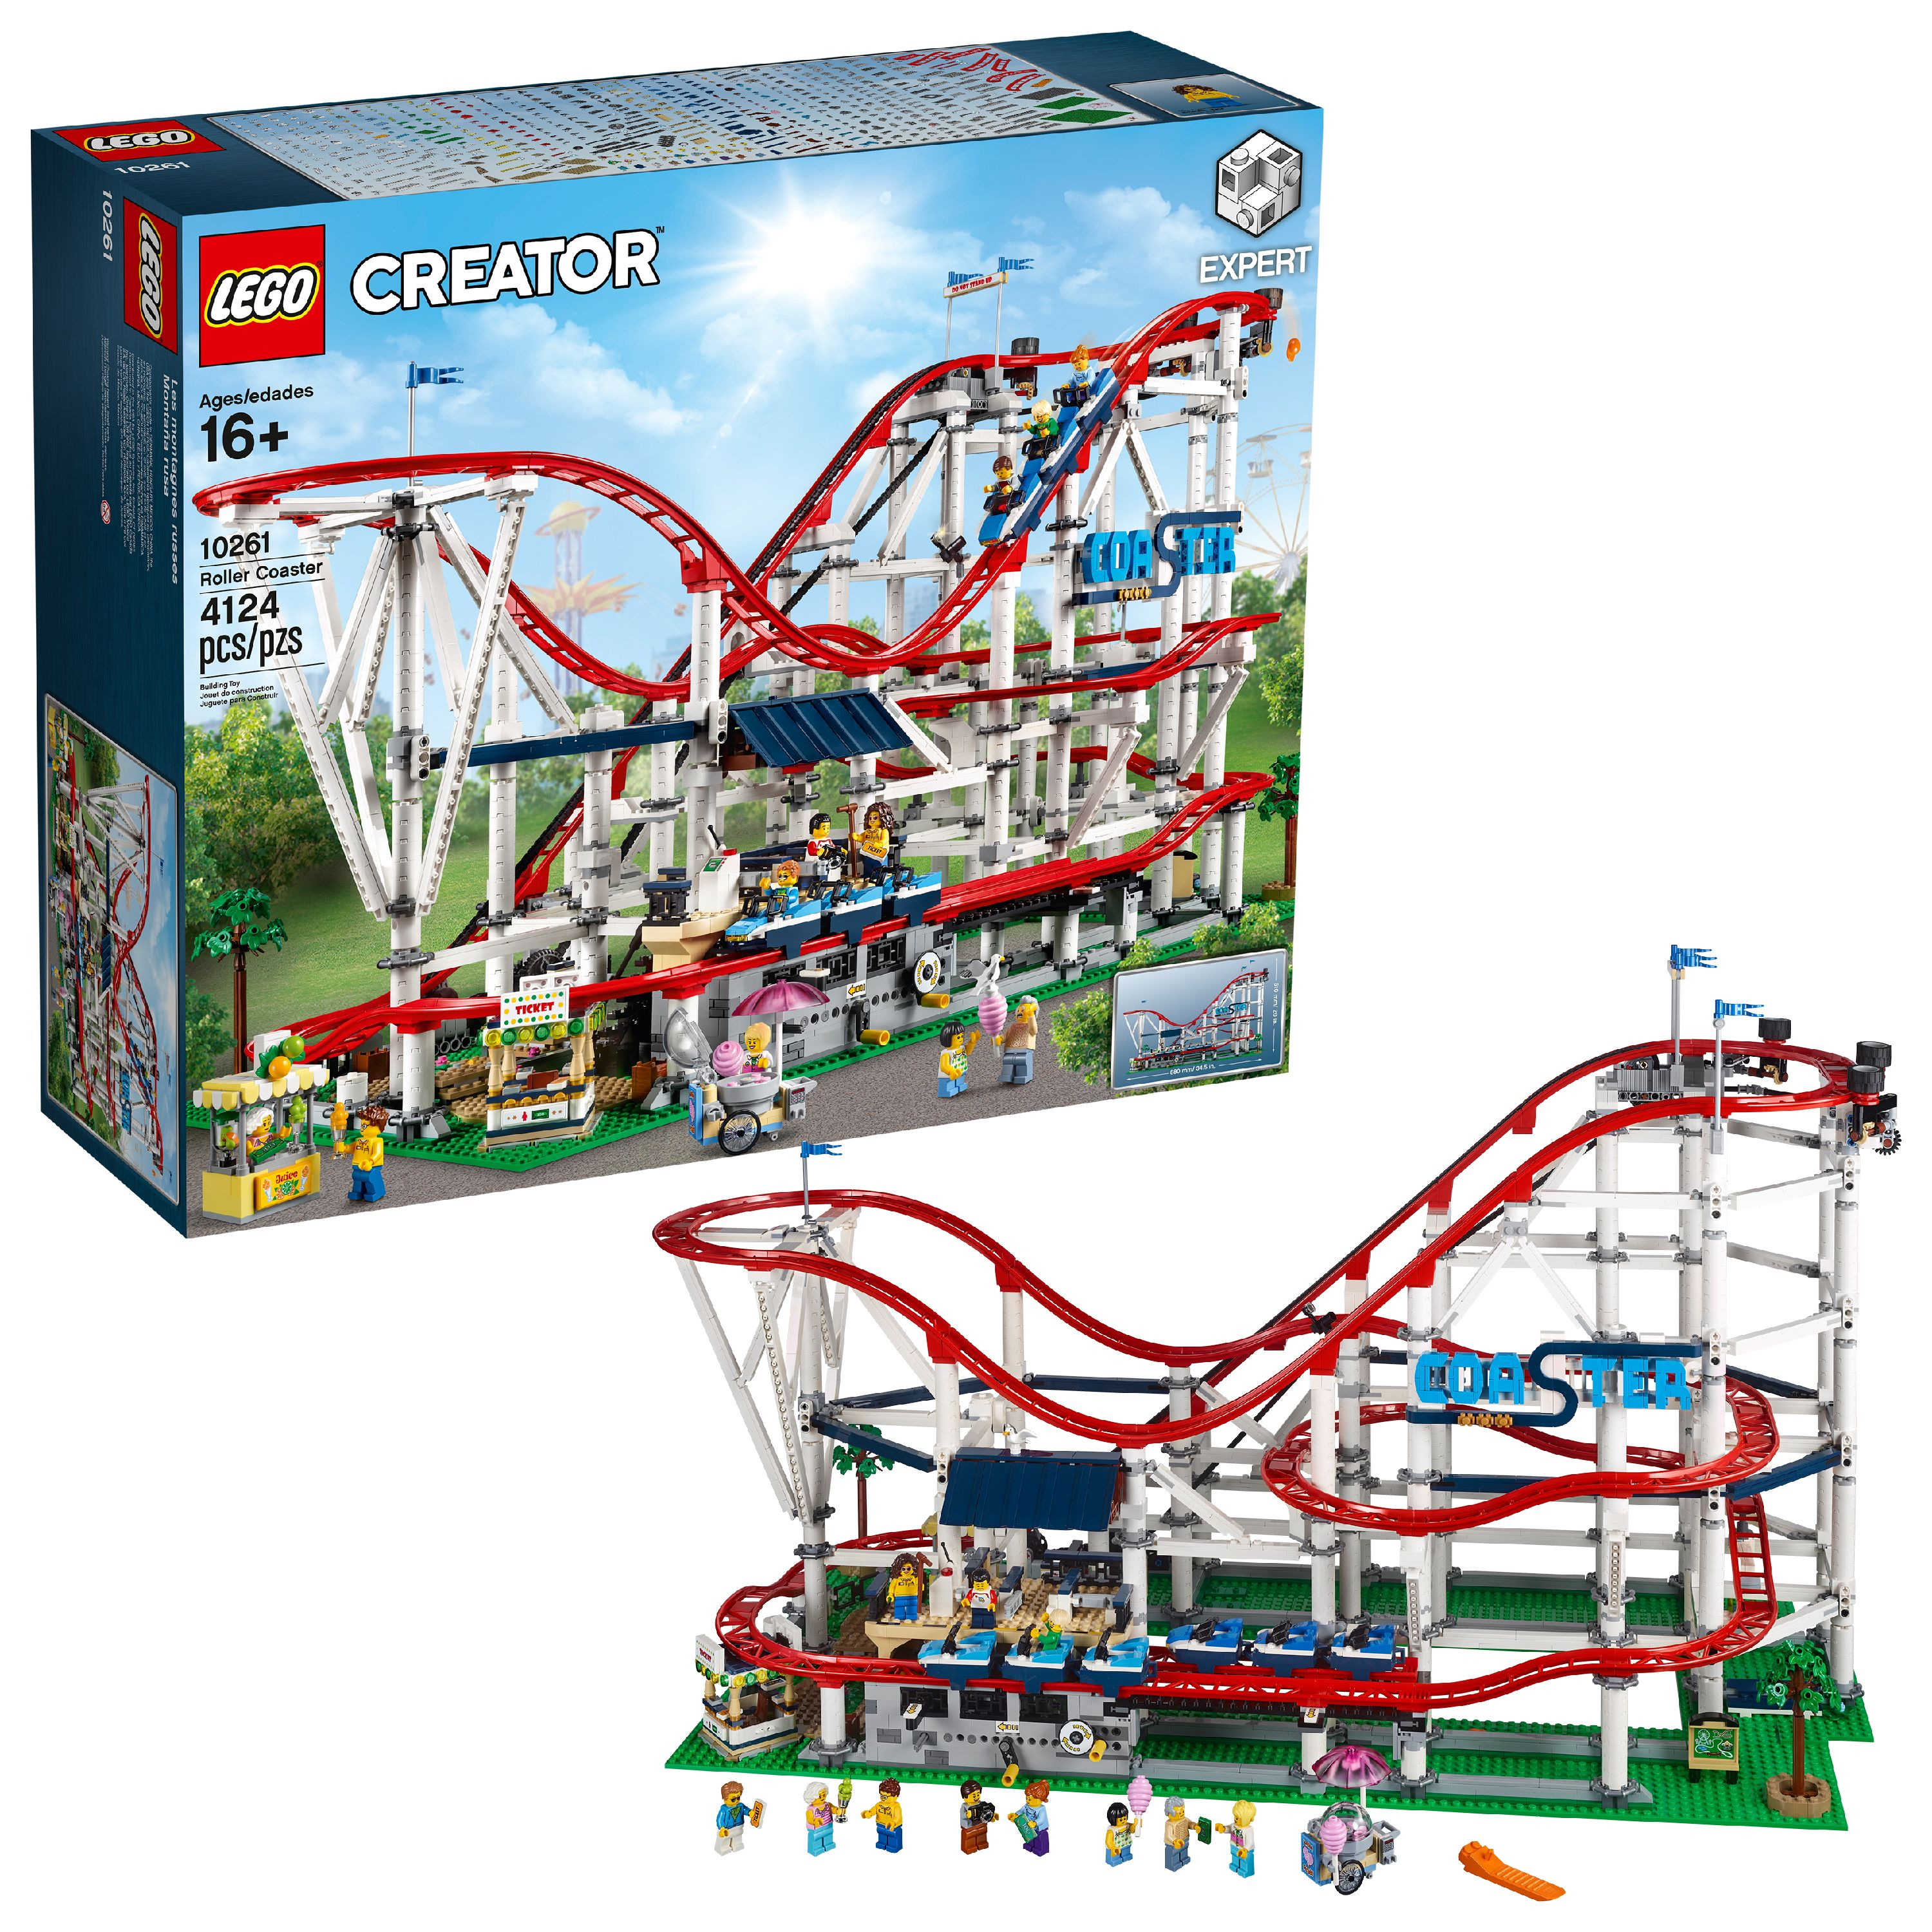 Lego Creator Expert Roller Coaster 10261 Toy of the Year 2019 by LEGO System Inc